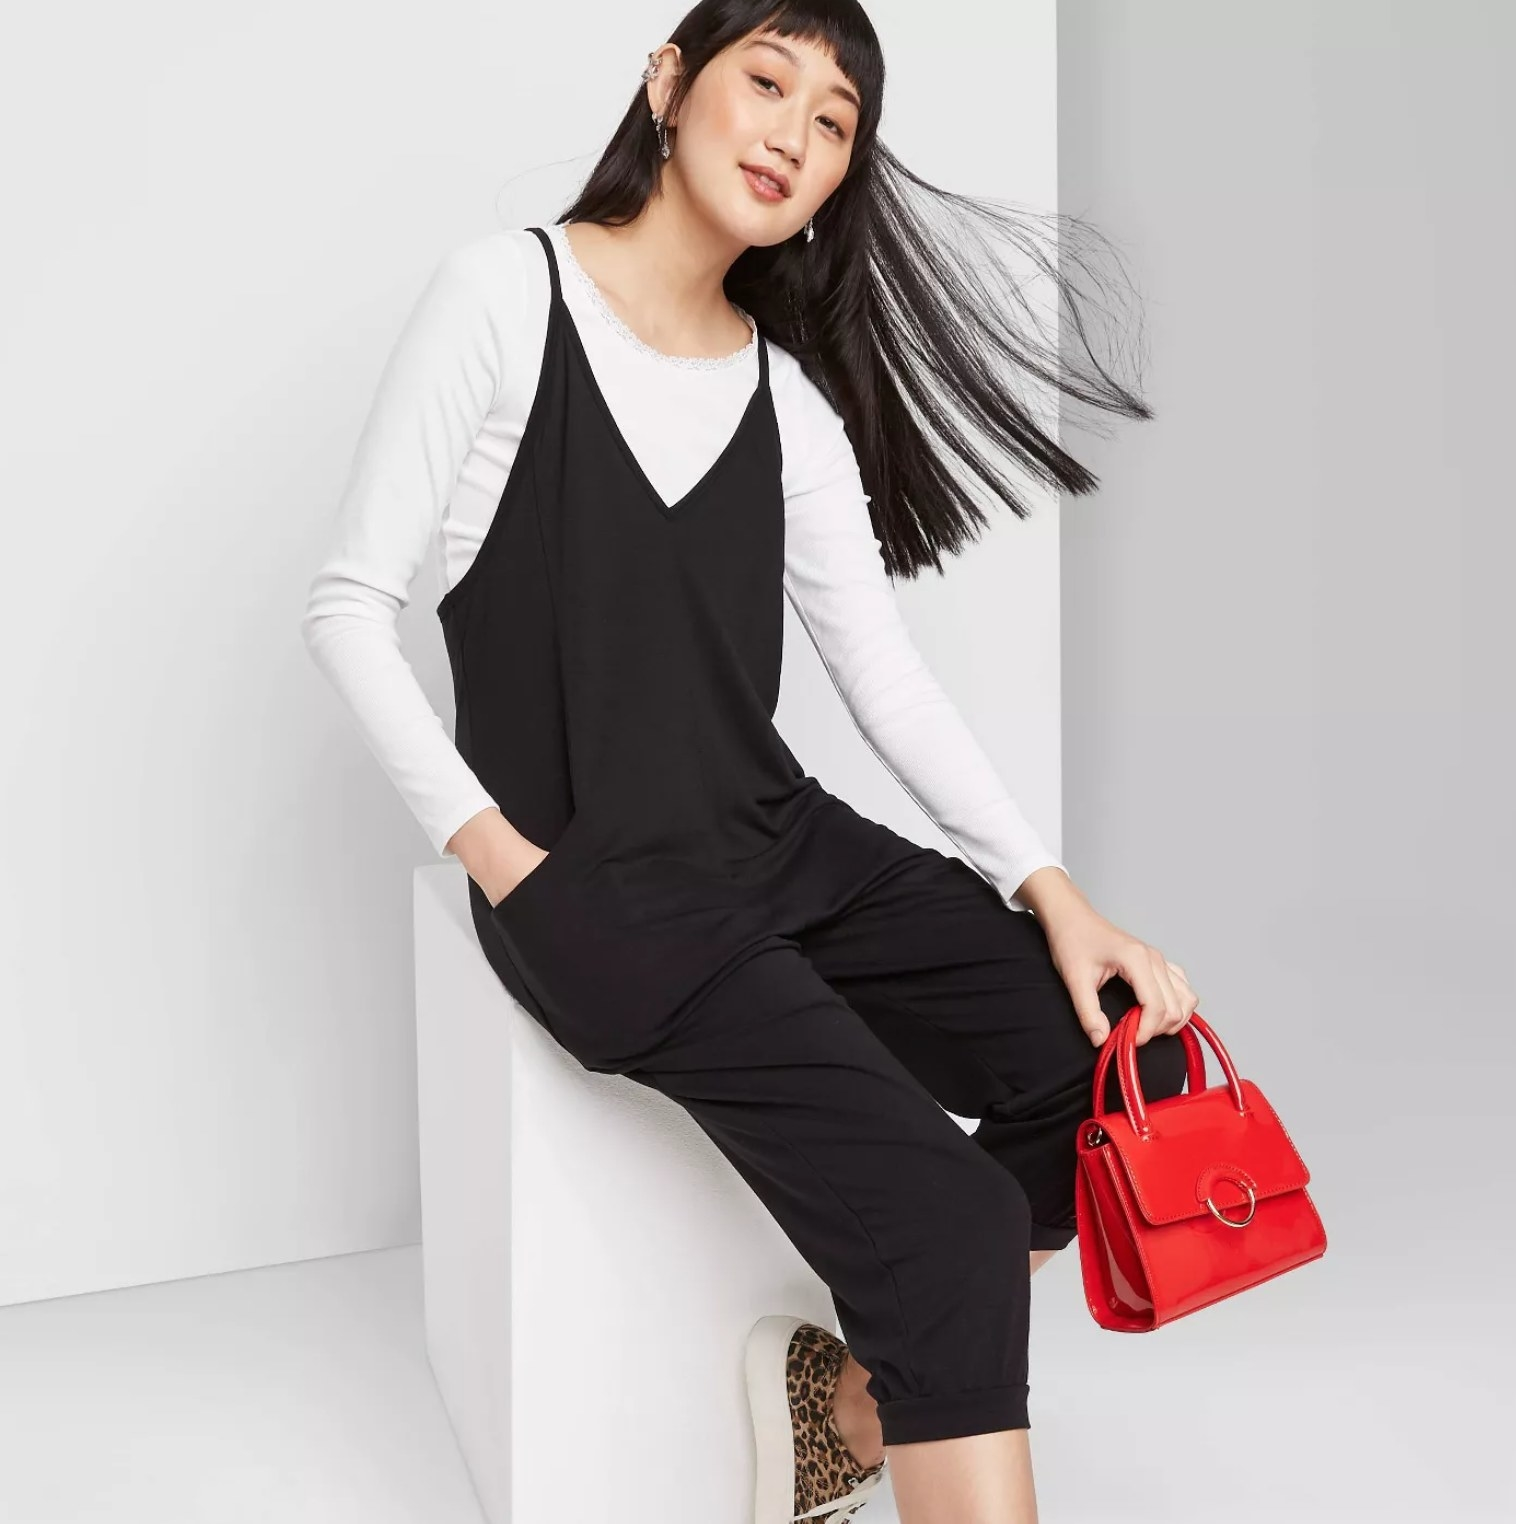 Model wearing the jumpsuit in black holding a red handbag